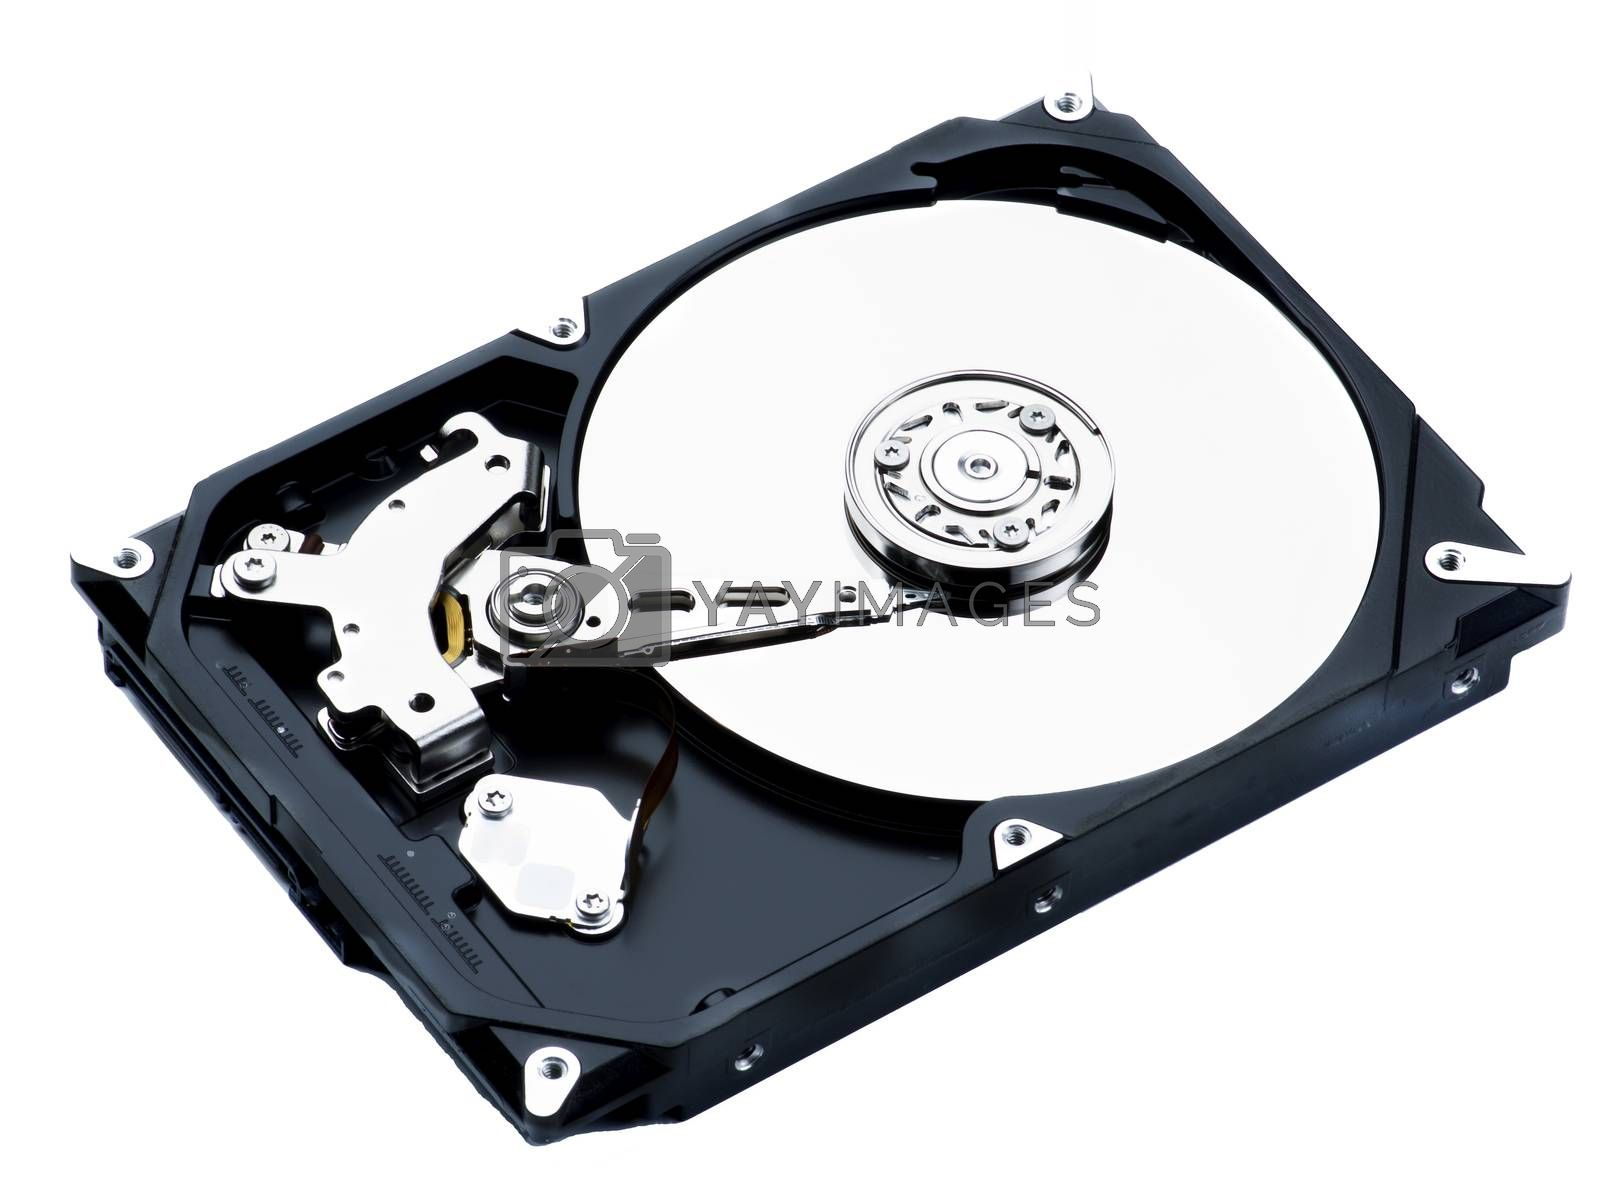 Opened Computer Hard Disk Drive closeup on White background